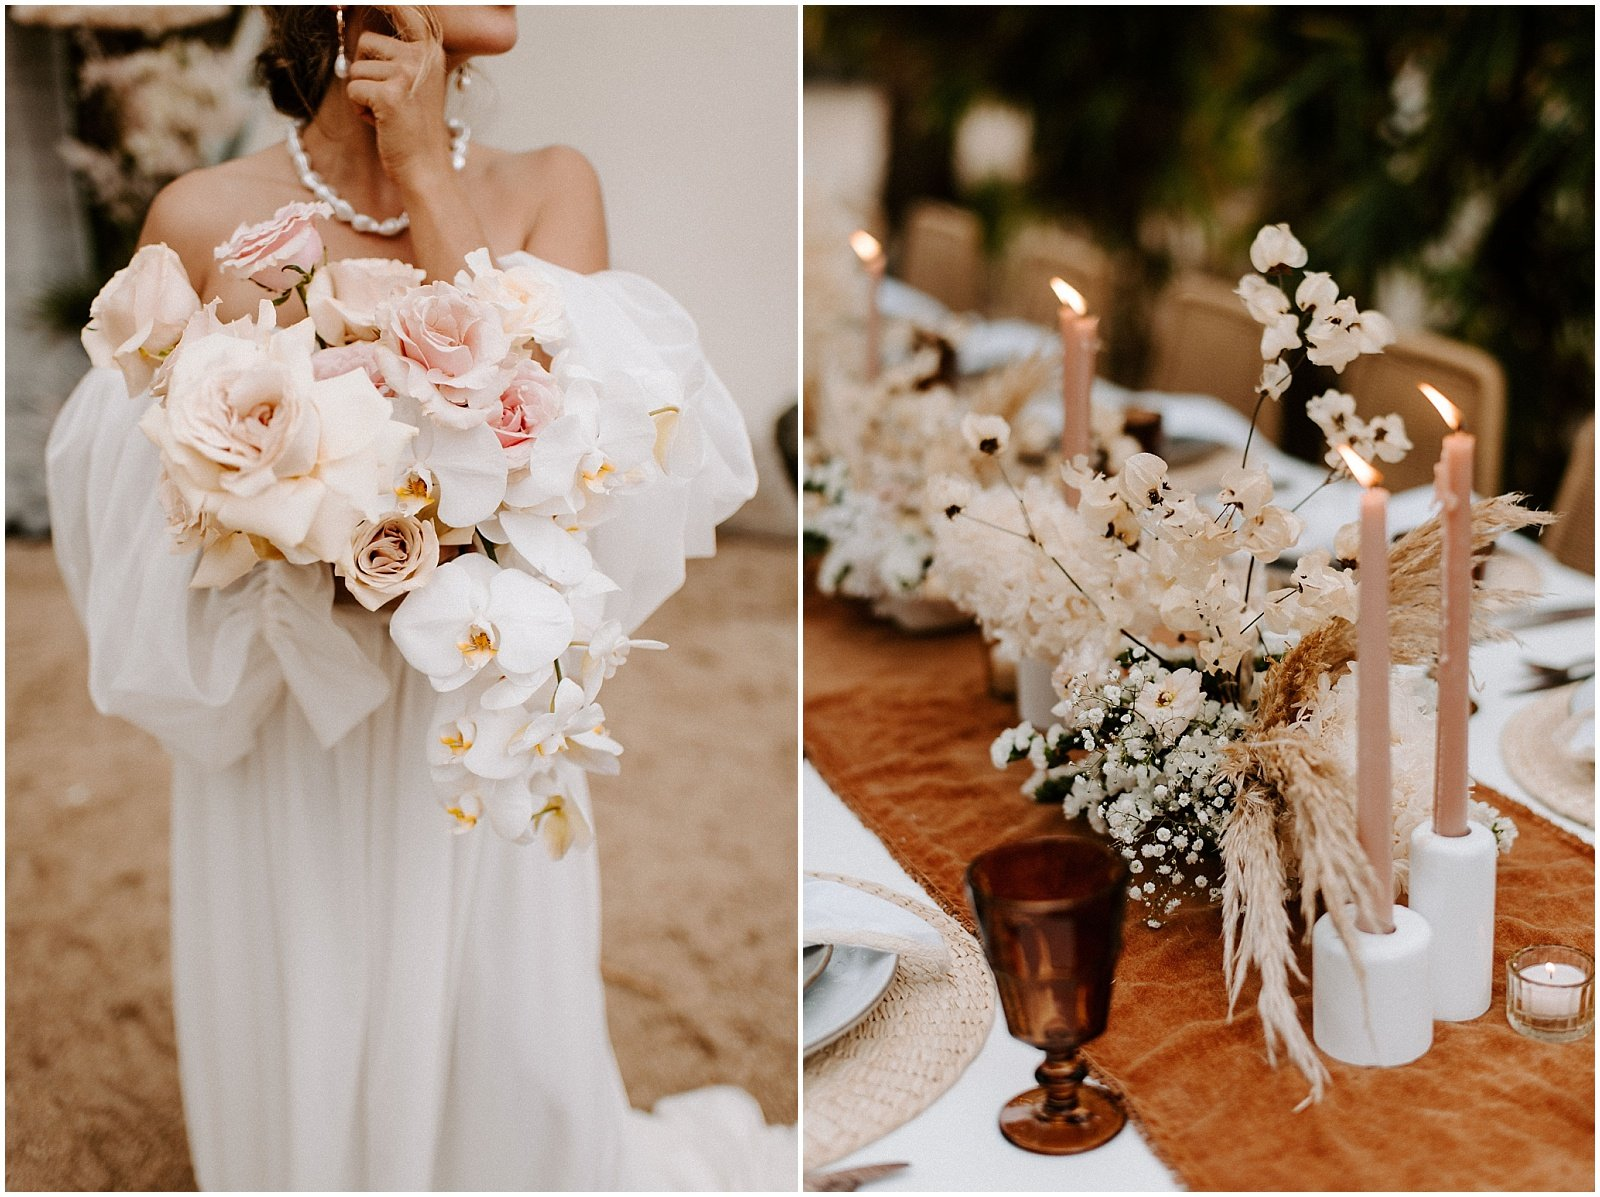 Bride holding a blush and white modern bouquet of roses and orchids